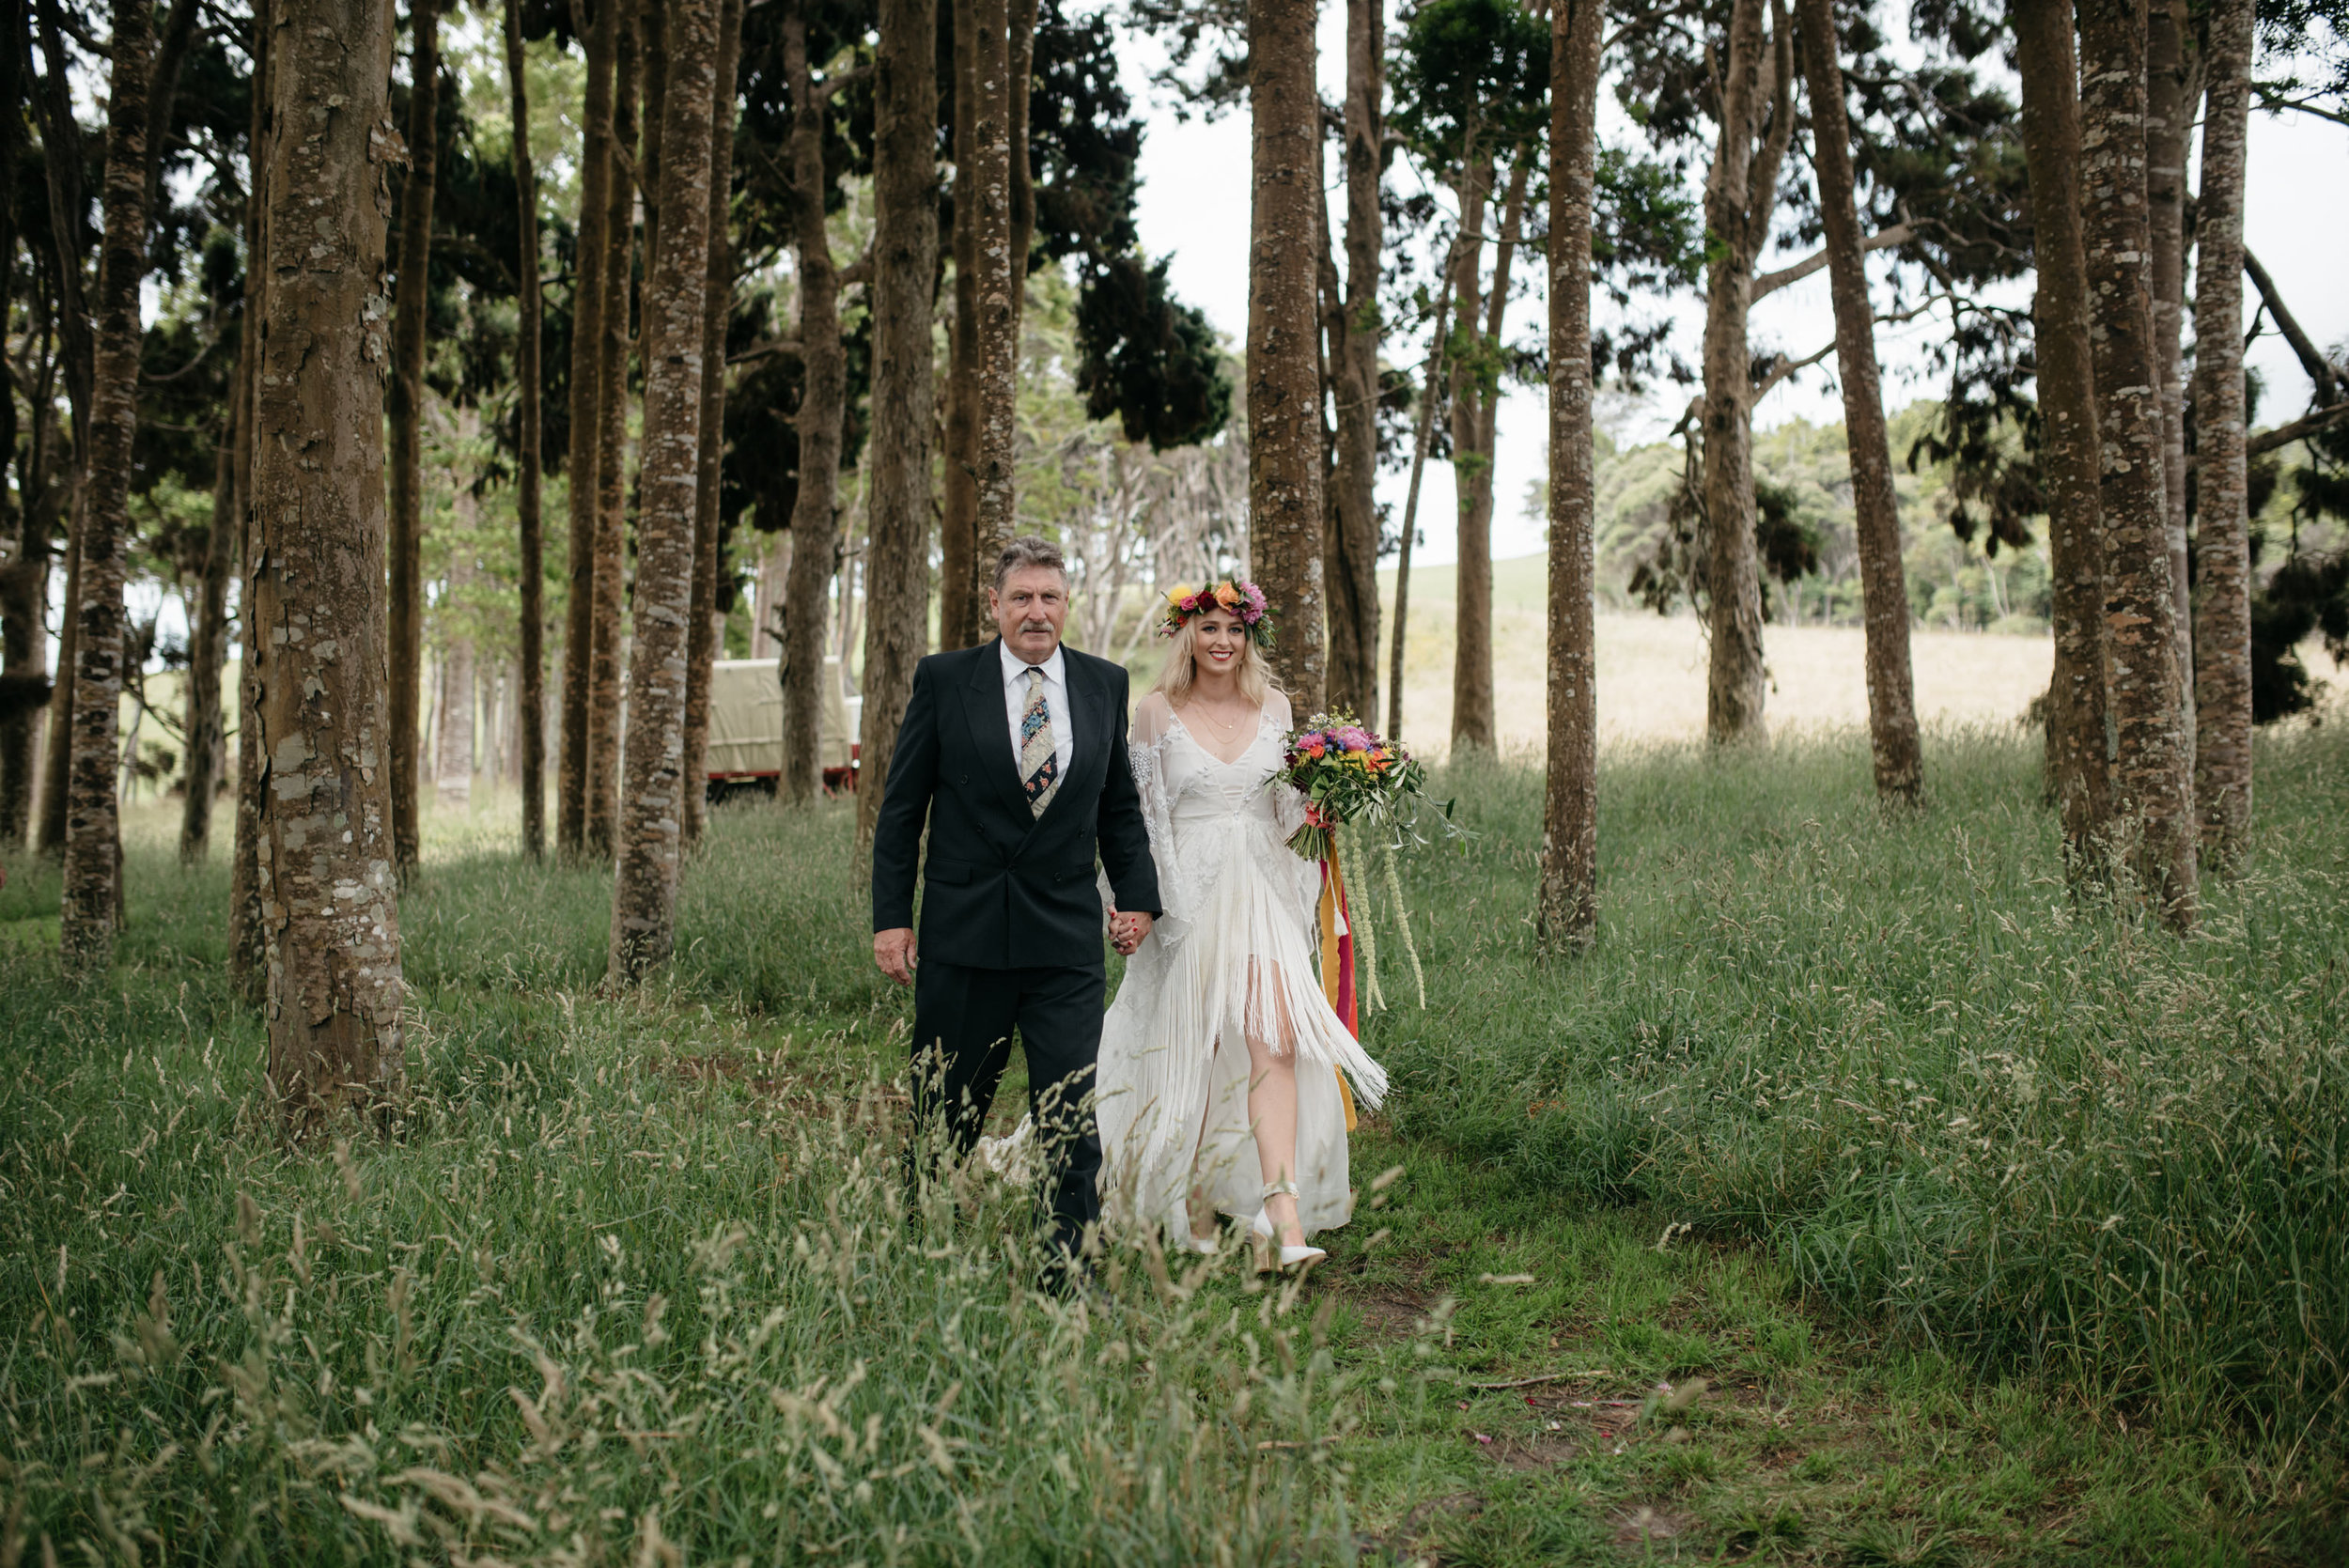 Josie and Ryan EPHEMERAL CREATIVE Jonkers Farm New Zealand Wedding bride and father walking down the aisle